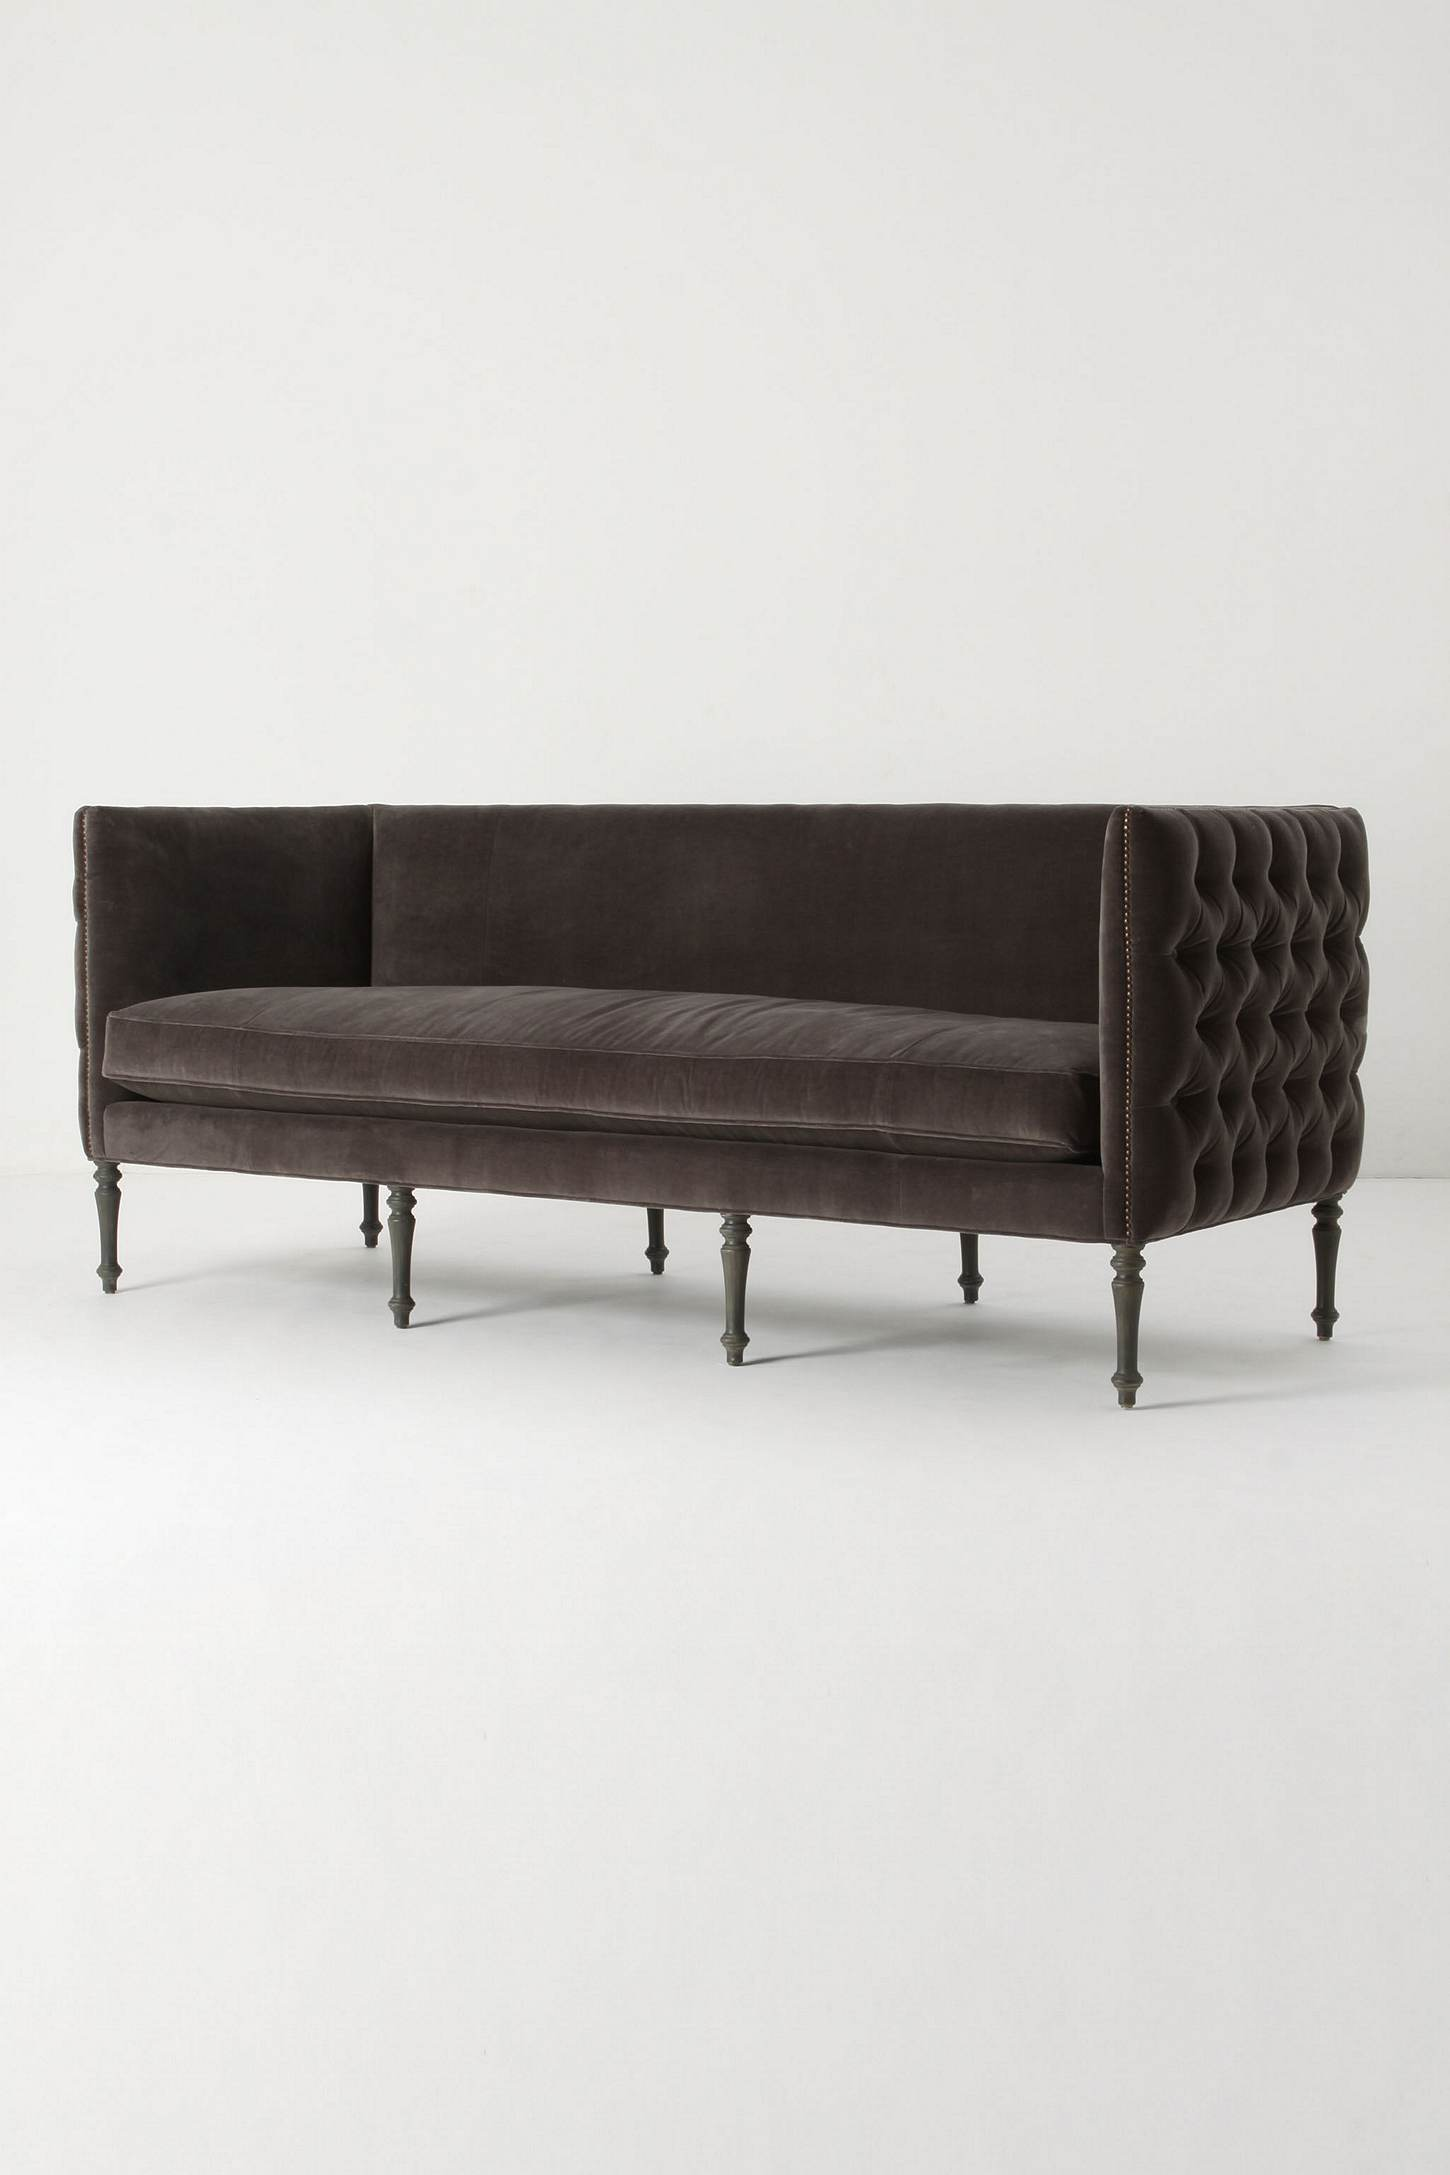 anthropologie sofa ultra modern fabric set fendi minosse the styleboston blog